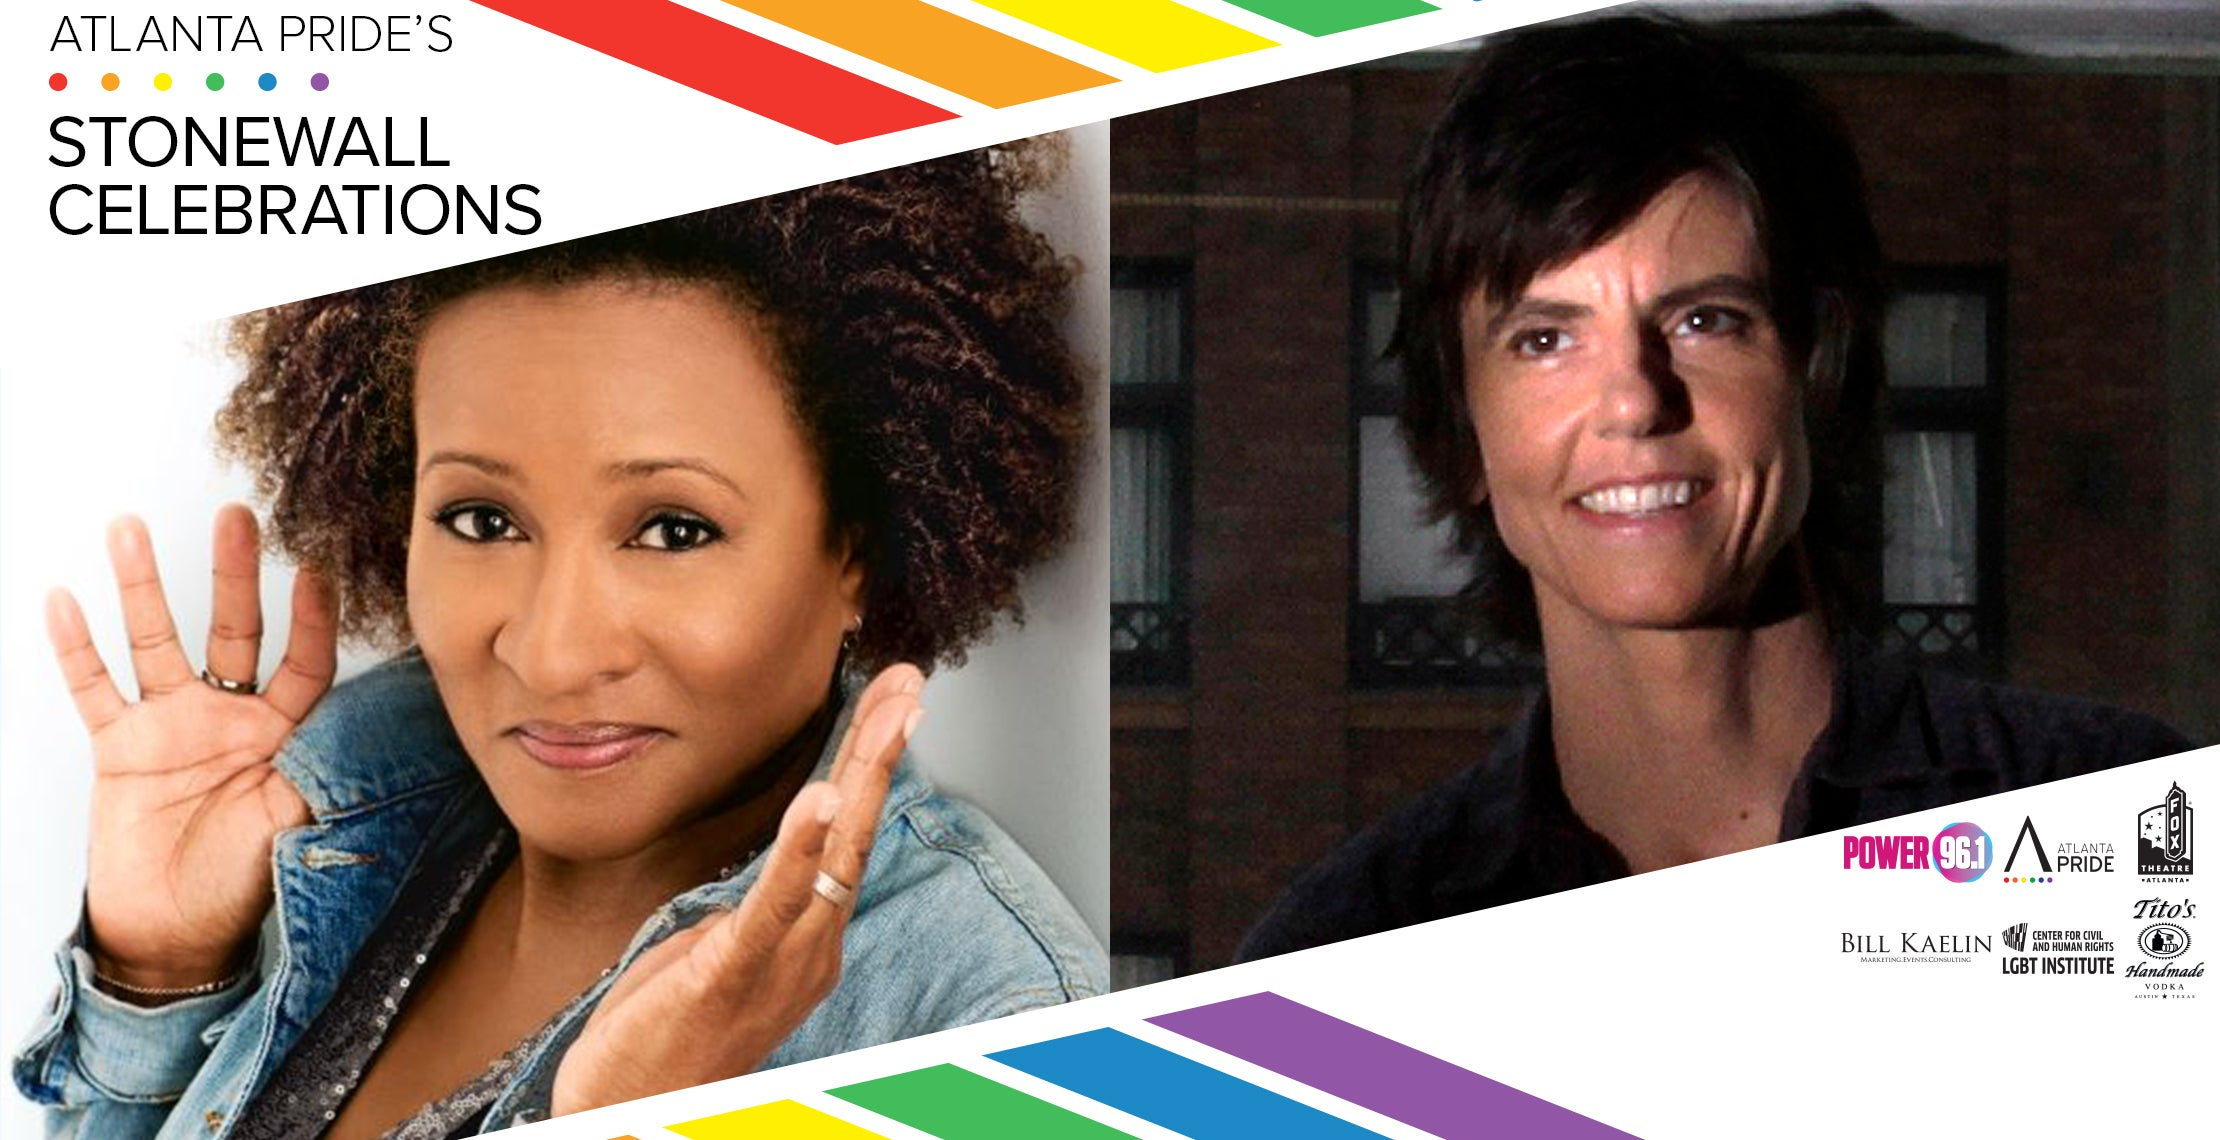 Atlanta Pride presents Wanda Sykes and Tig Notaro